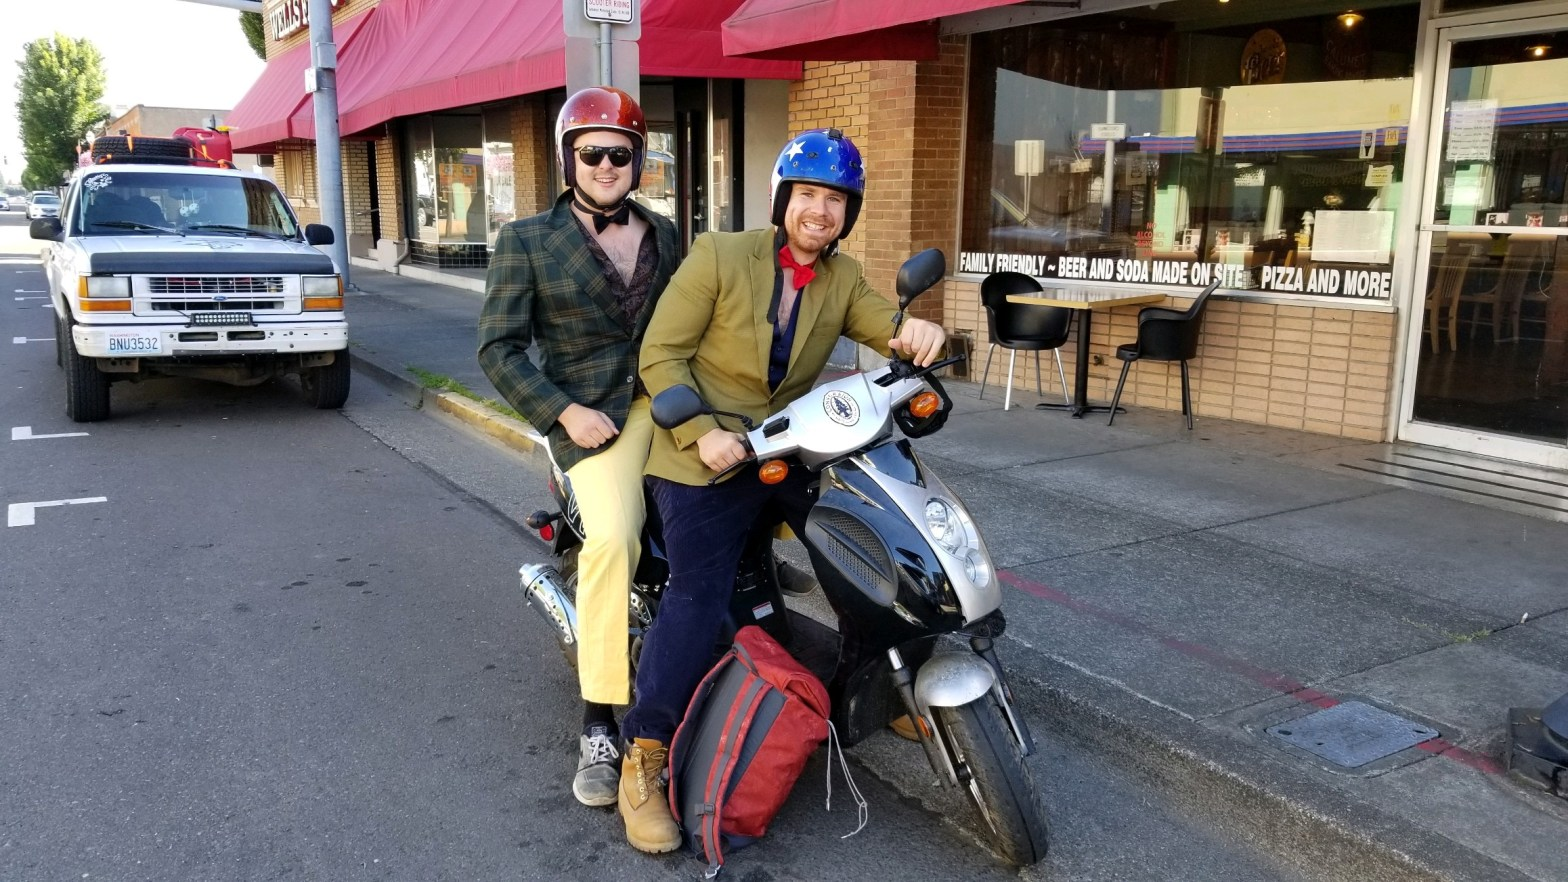 Just-two-guys-on-a-moped